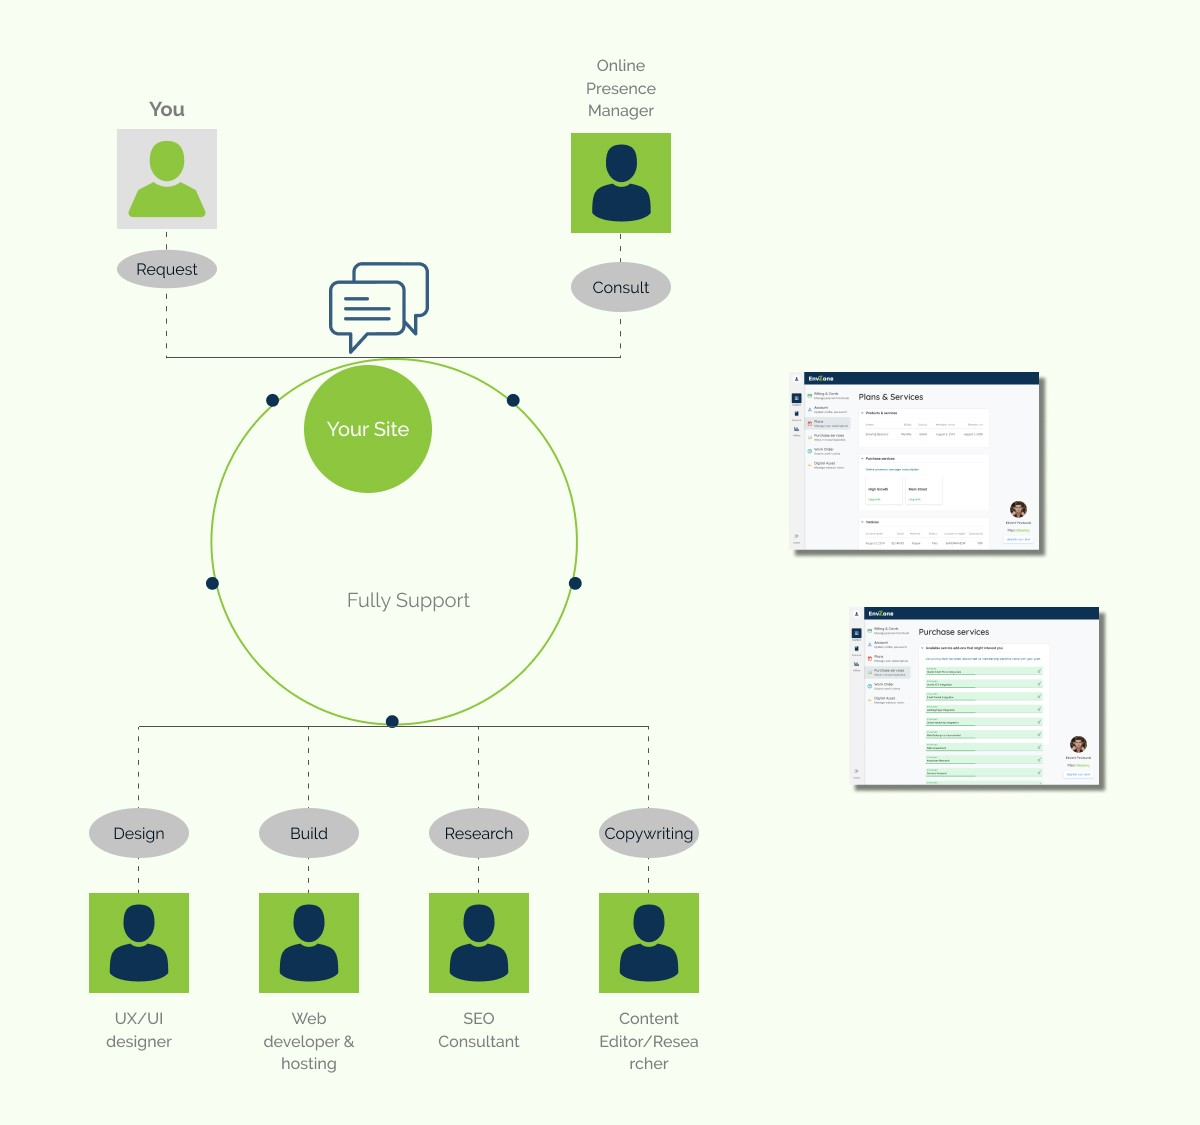 Online presence manager as a service work flow